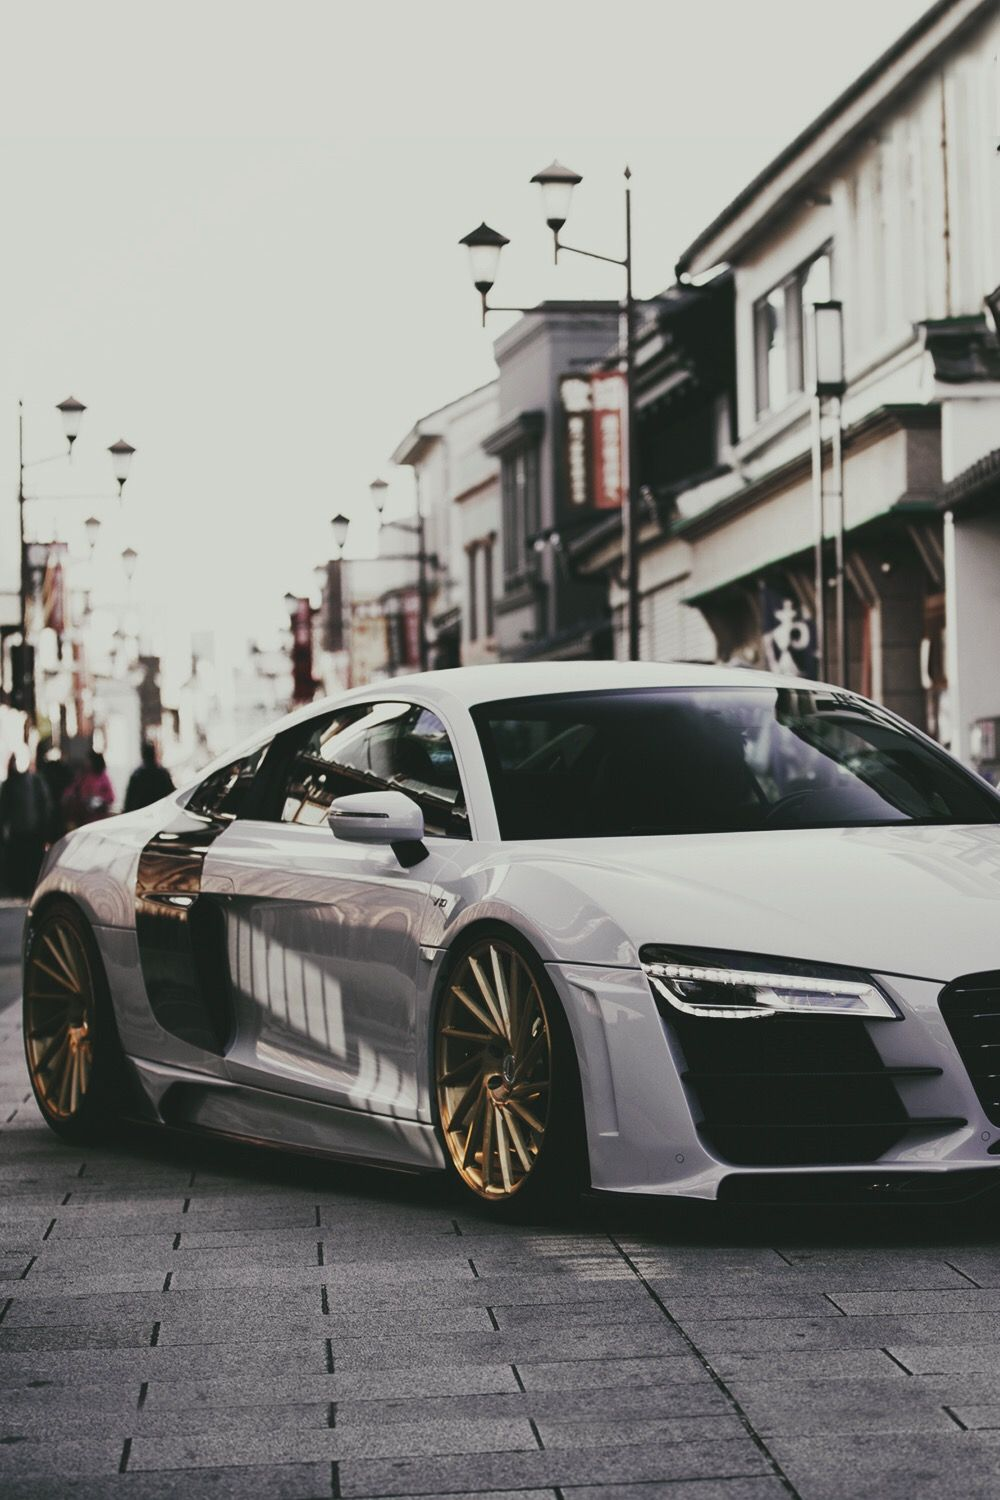 Pin by Buddy on Cars (With images) Sports cars luxury, 4